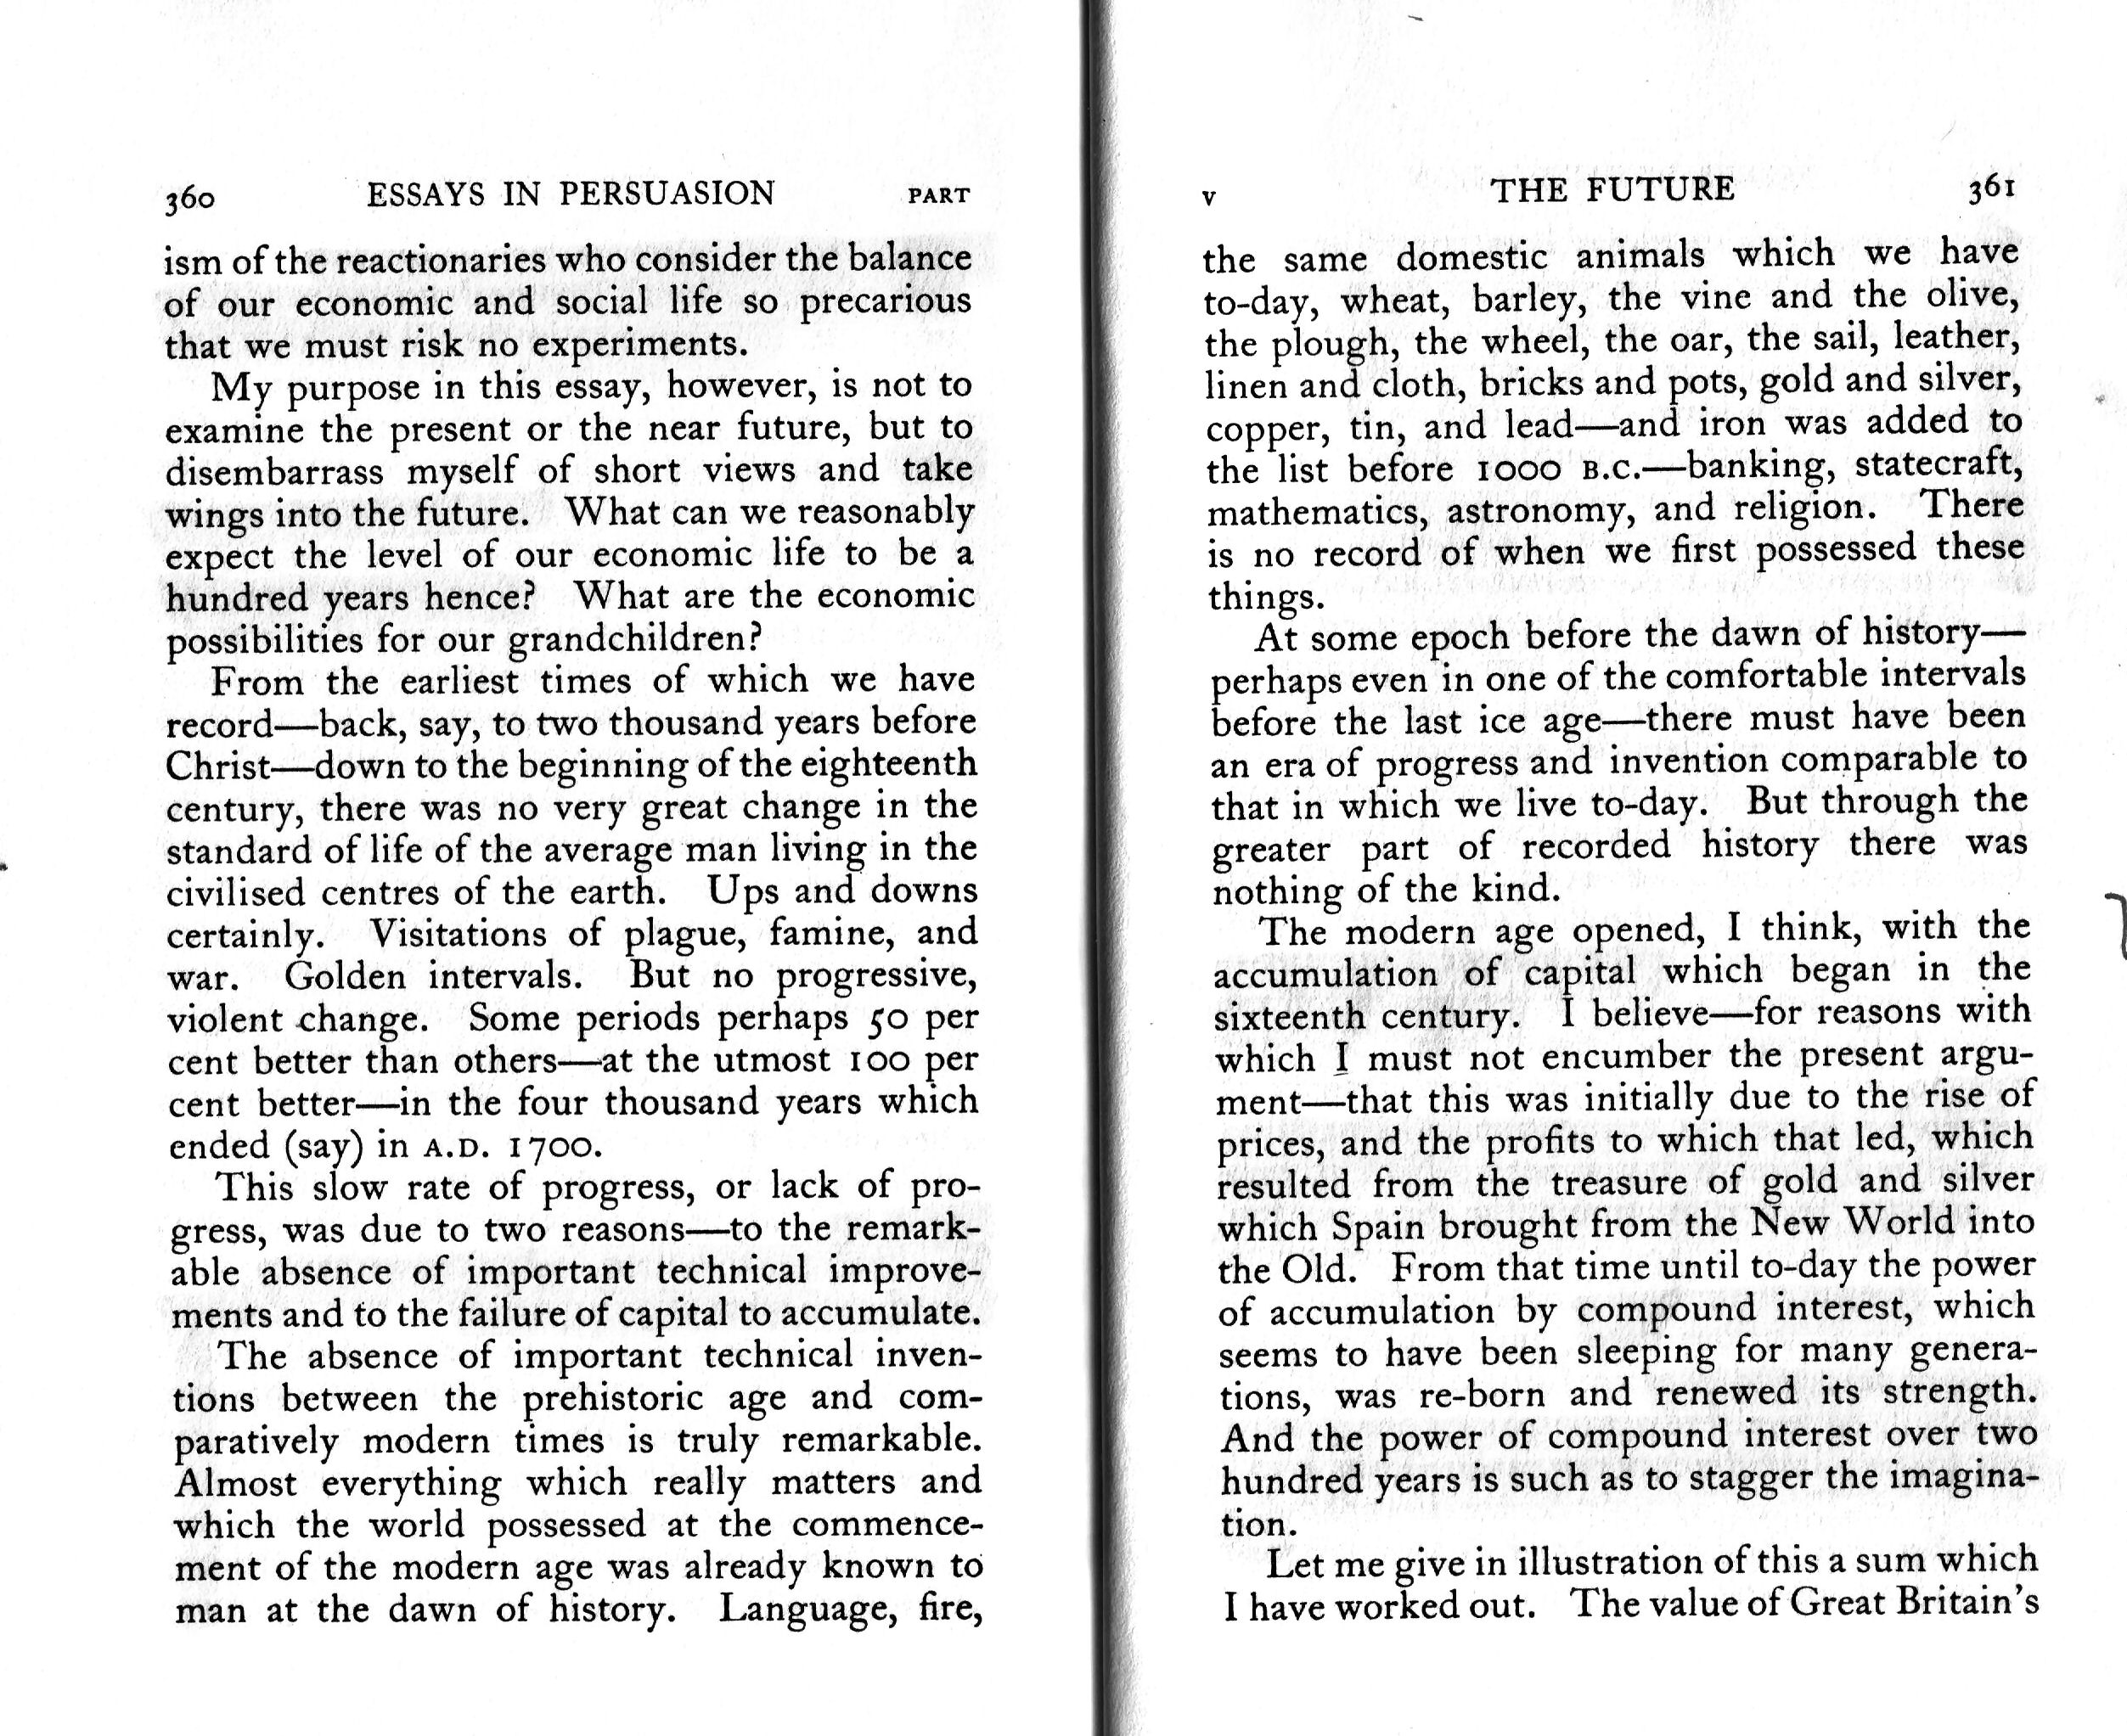 022 Essay Example Essays In Remarkable Persuasion Keynes 1931 Wikipedia Summary Full